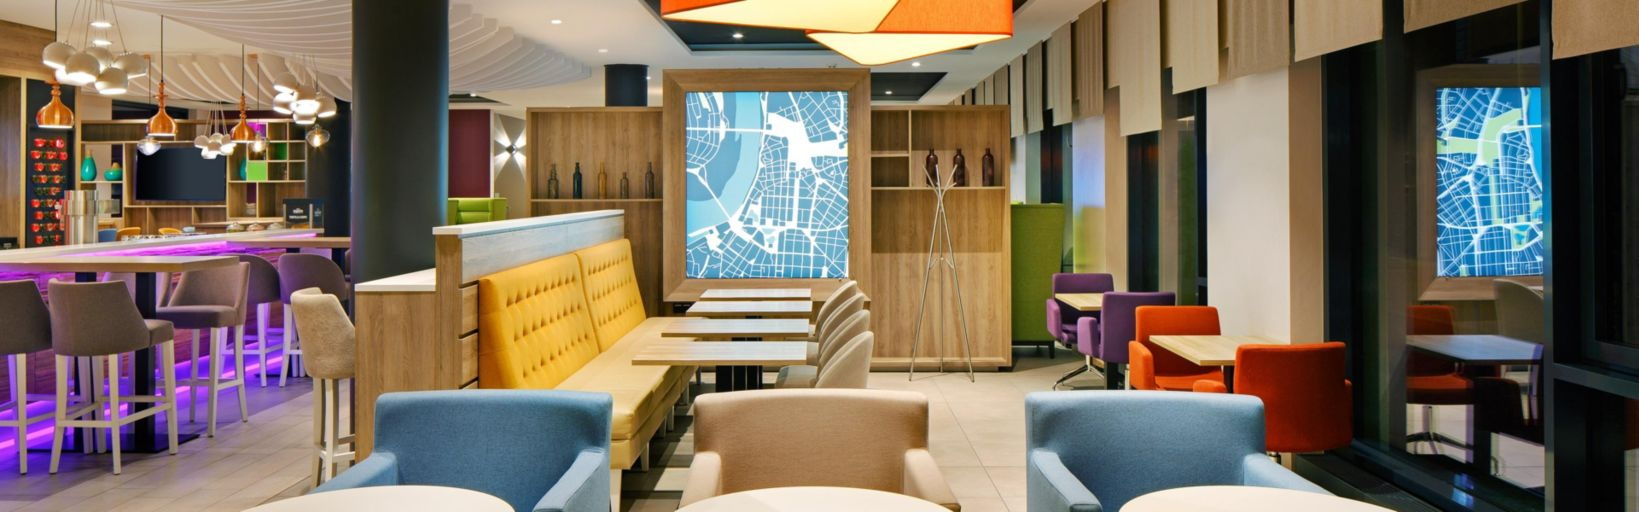 Holiday Inn Dusseldorf City Toulouser All. Hotel by IHG on